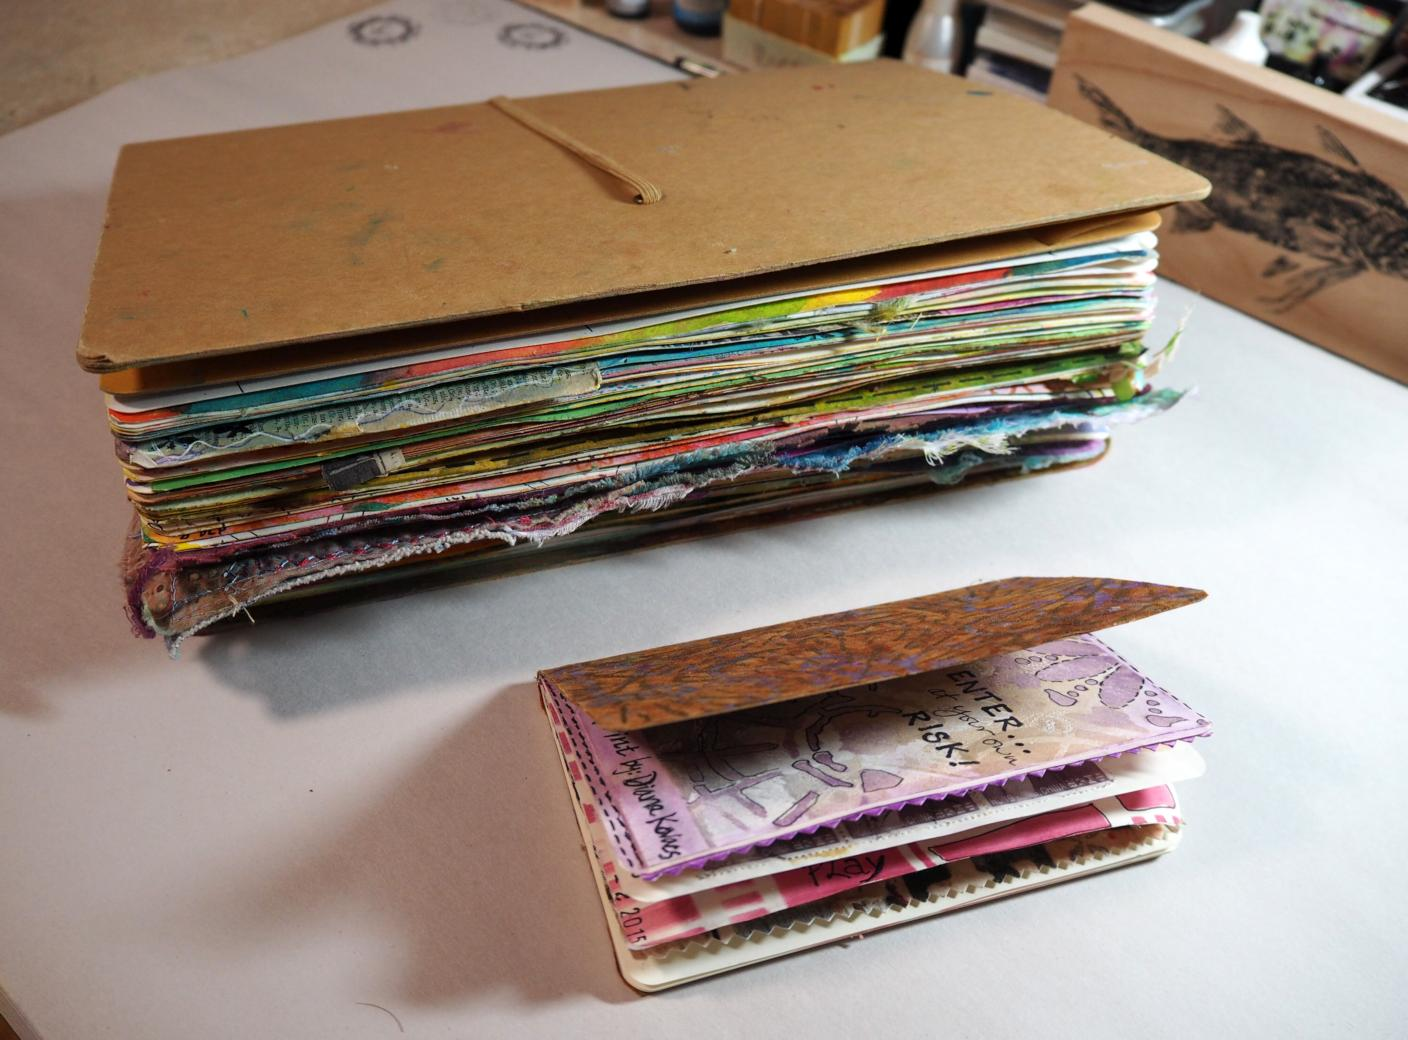 """The difference in size between my larger 9"""" x 12"""" Dylusions art journal and my 3-1/2"""" x 5"""" moleskine journal . . ."""